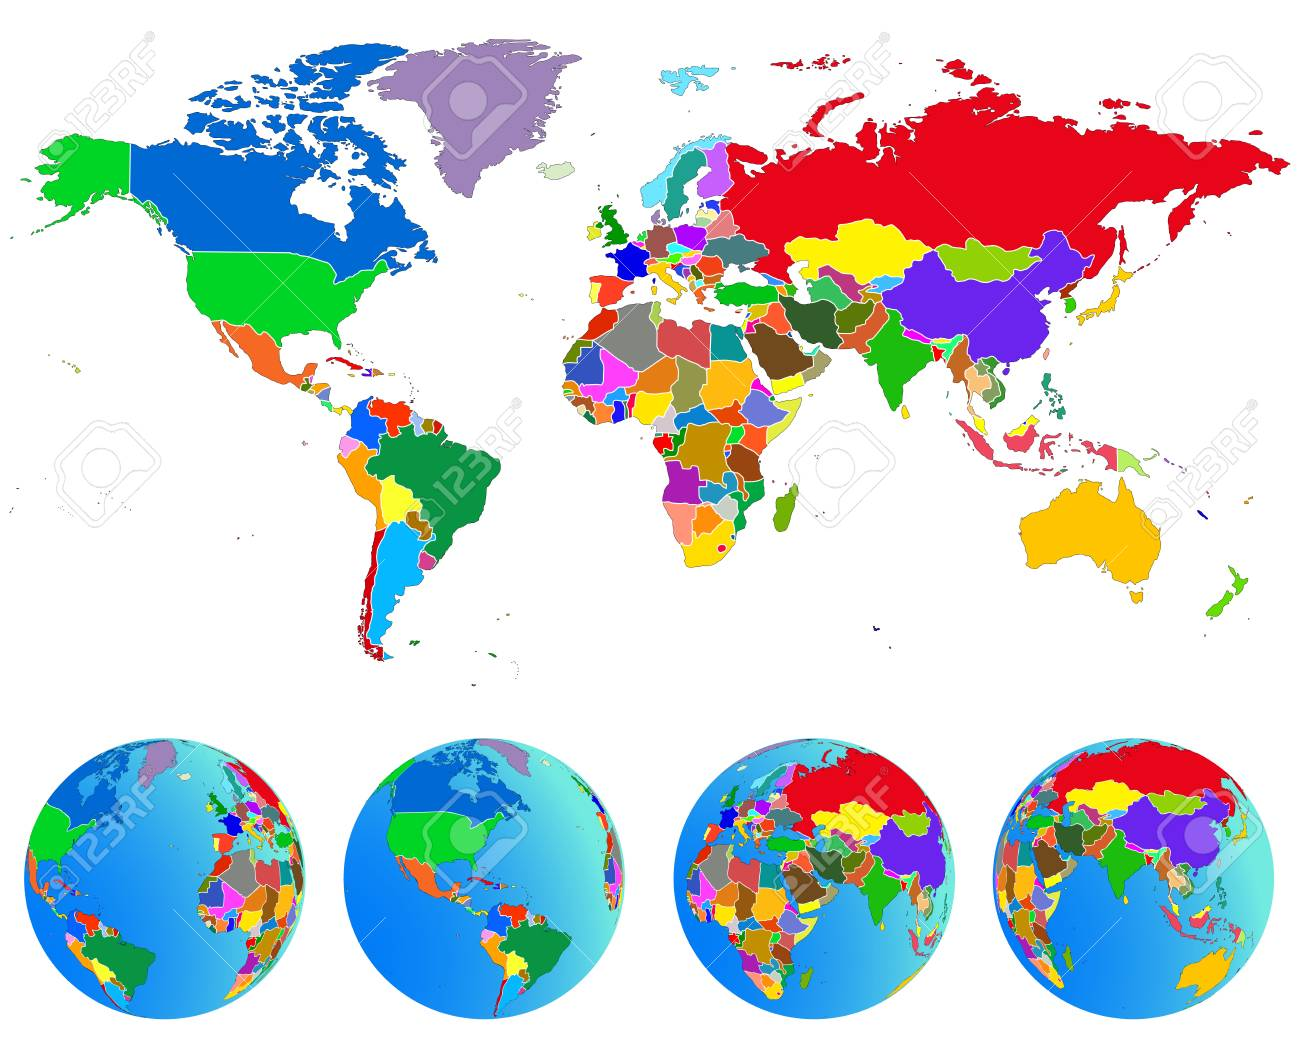 World map globes with countries planet earth vector illustration vector world map globes with countries planet earth vector illustration isolated on white background gumiabroncs Image collections